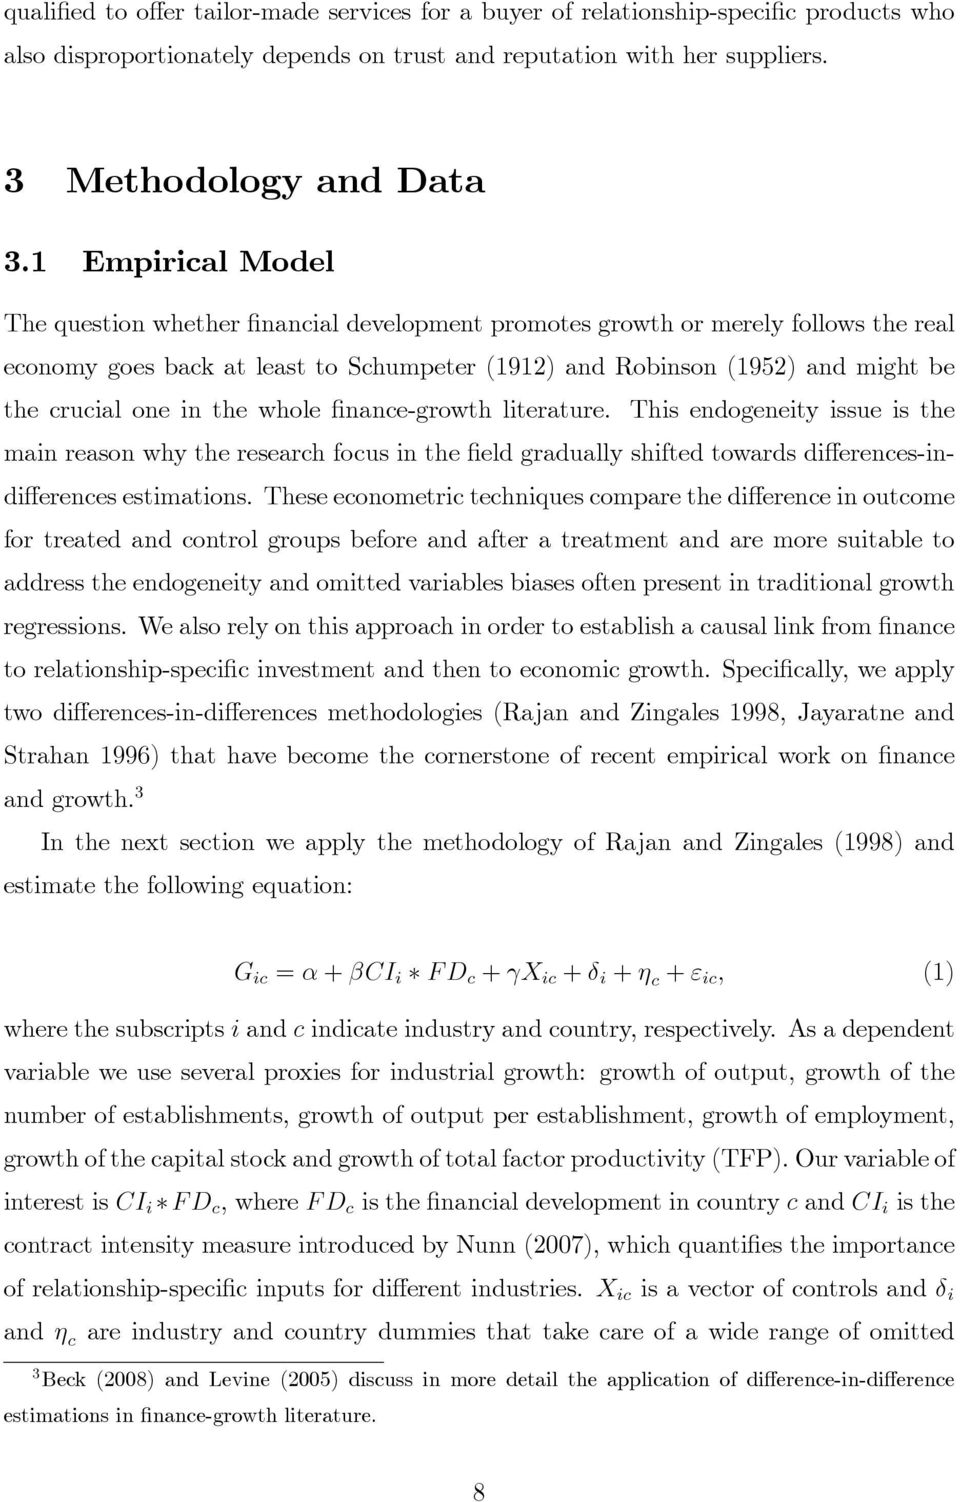 in the whole nance-growth literature. This endogeneity issue is the main reason why the research focus in the eld gradually shifted towards di erences-indi erences estimations.